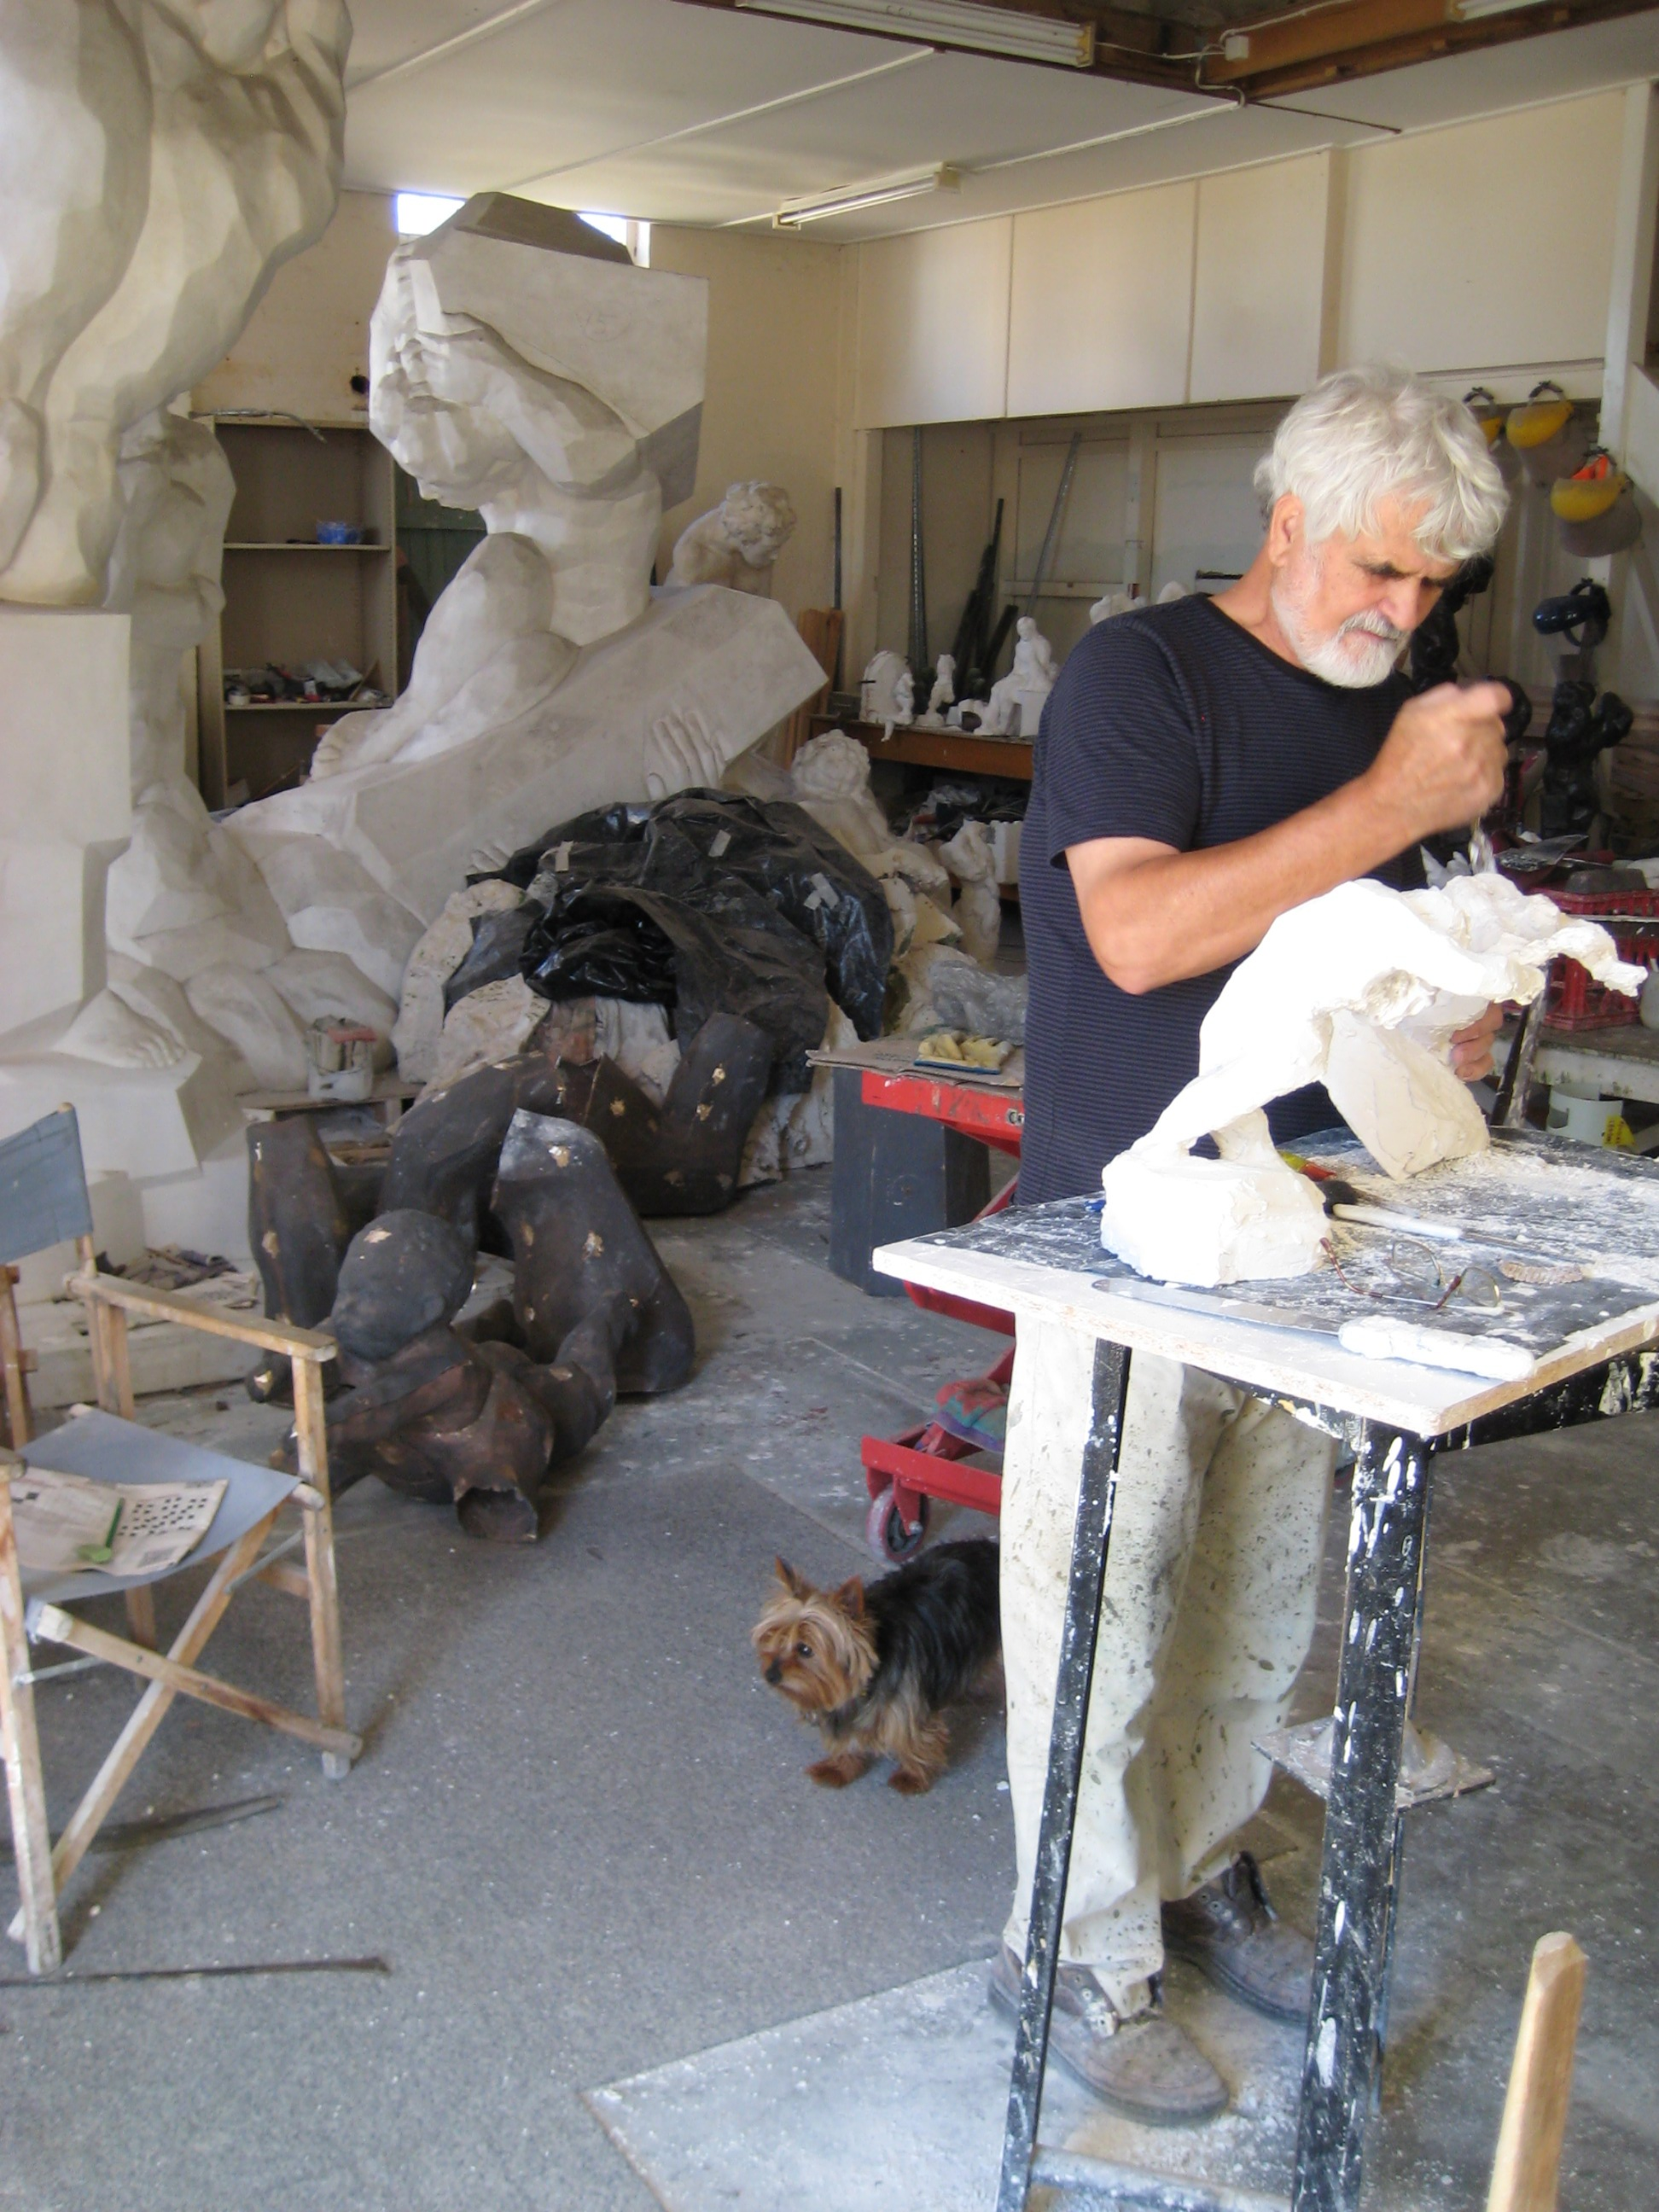 ANTE DABRO ANTE DABRO AT WORK IN HIS WORKSHOP STUDIO AT EN:CANBERRA INTERNATIONAL AIRPORT. BEHIND ARE THE FULL SIZED MODELS FOR GENESIS AT LEFT AND RESILIENCE; ON THE FLOOR ARE THE UNASSEMBLED PARTS IN CAST BRASS FOR MOTHER AND CHILD. AT DABRO'S FEET IS HIS AUSTRALIAN SILKY TERRIER, CHIKO.